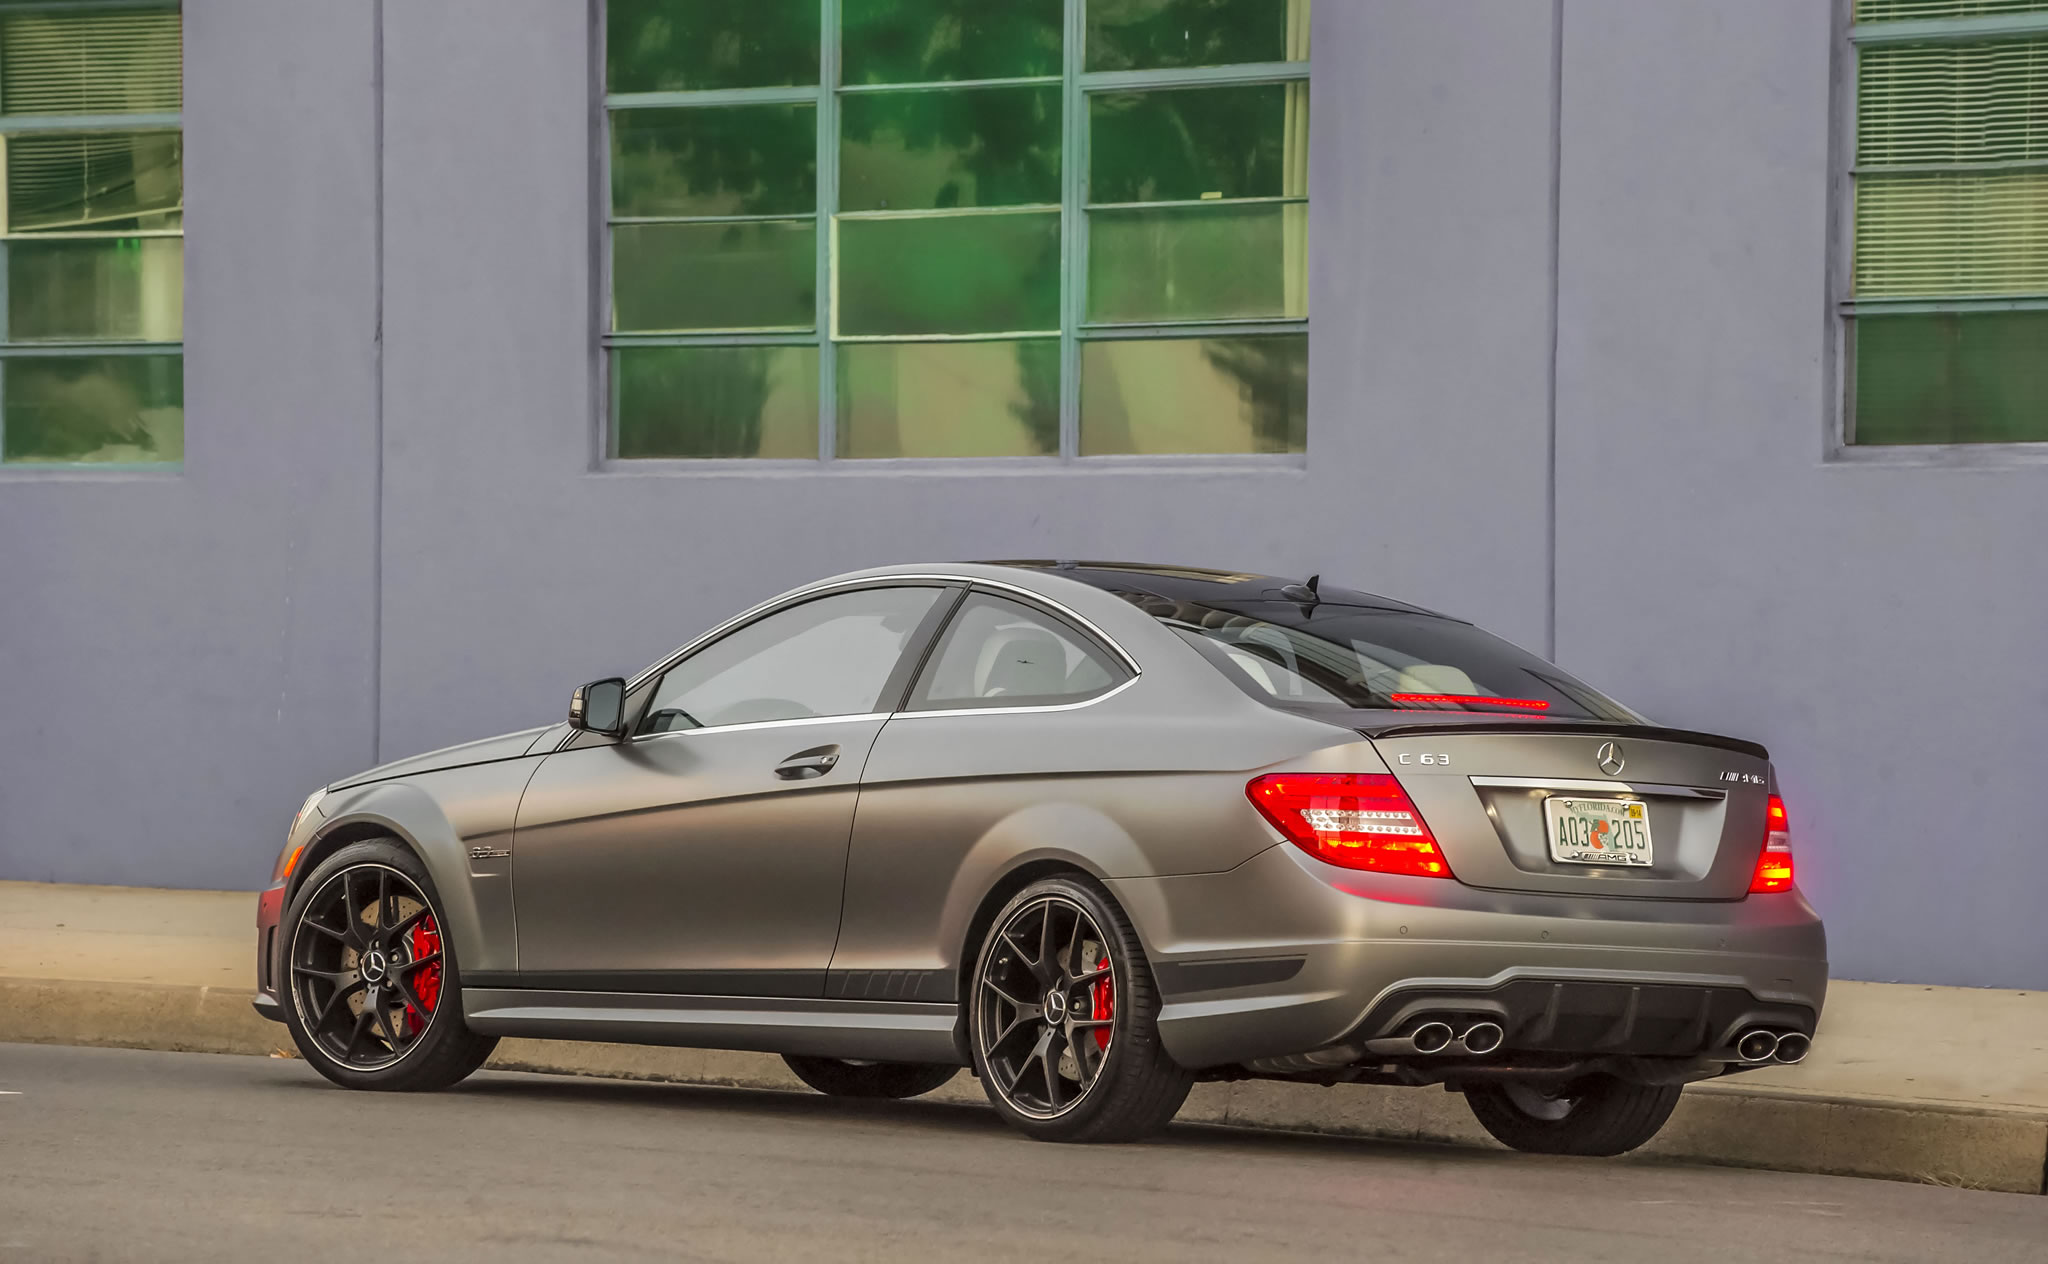 2014 mercedes benz c63 amg coupe edition 507 rear photo. Black Bedroom Furniture Sets. Home Design Ideas